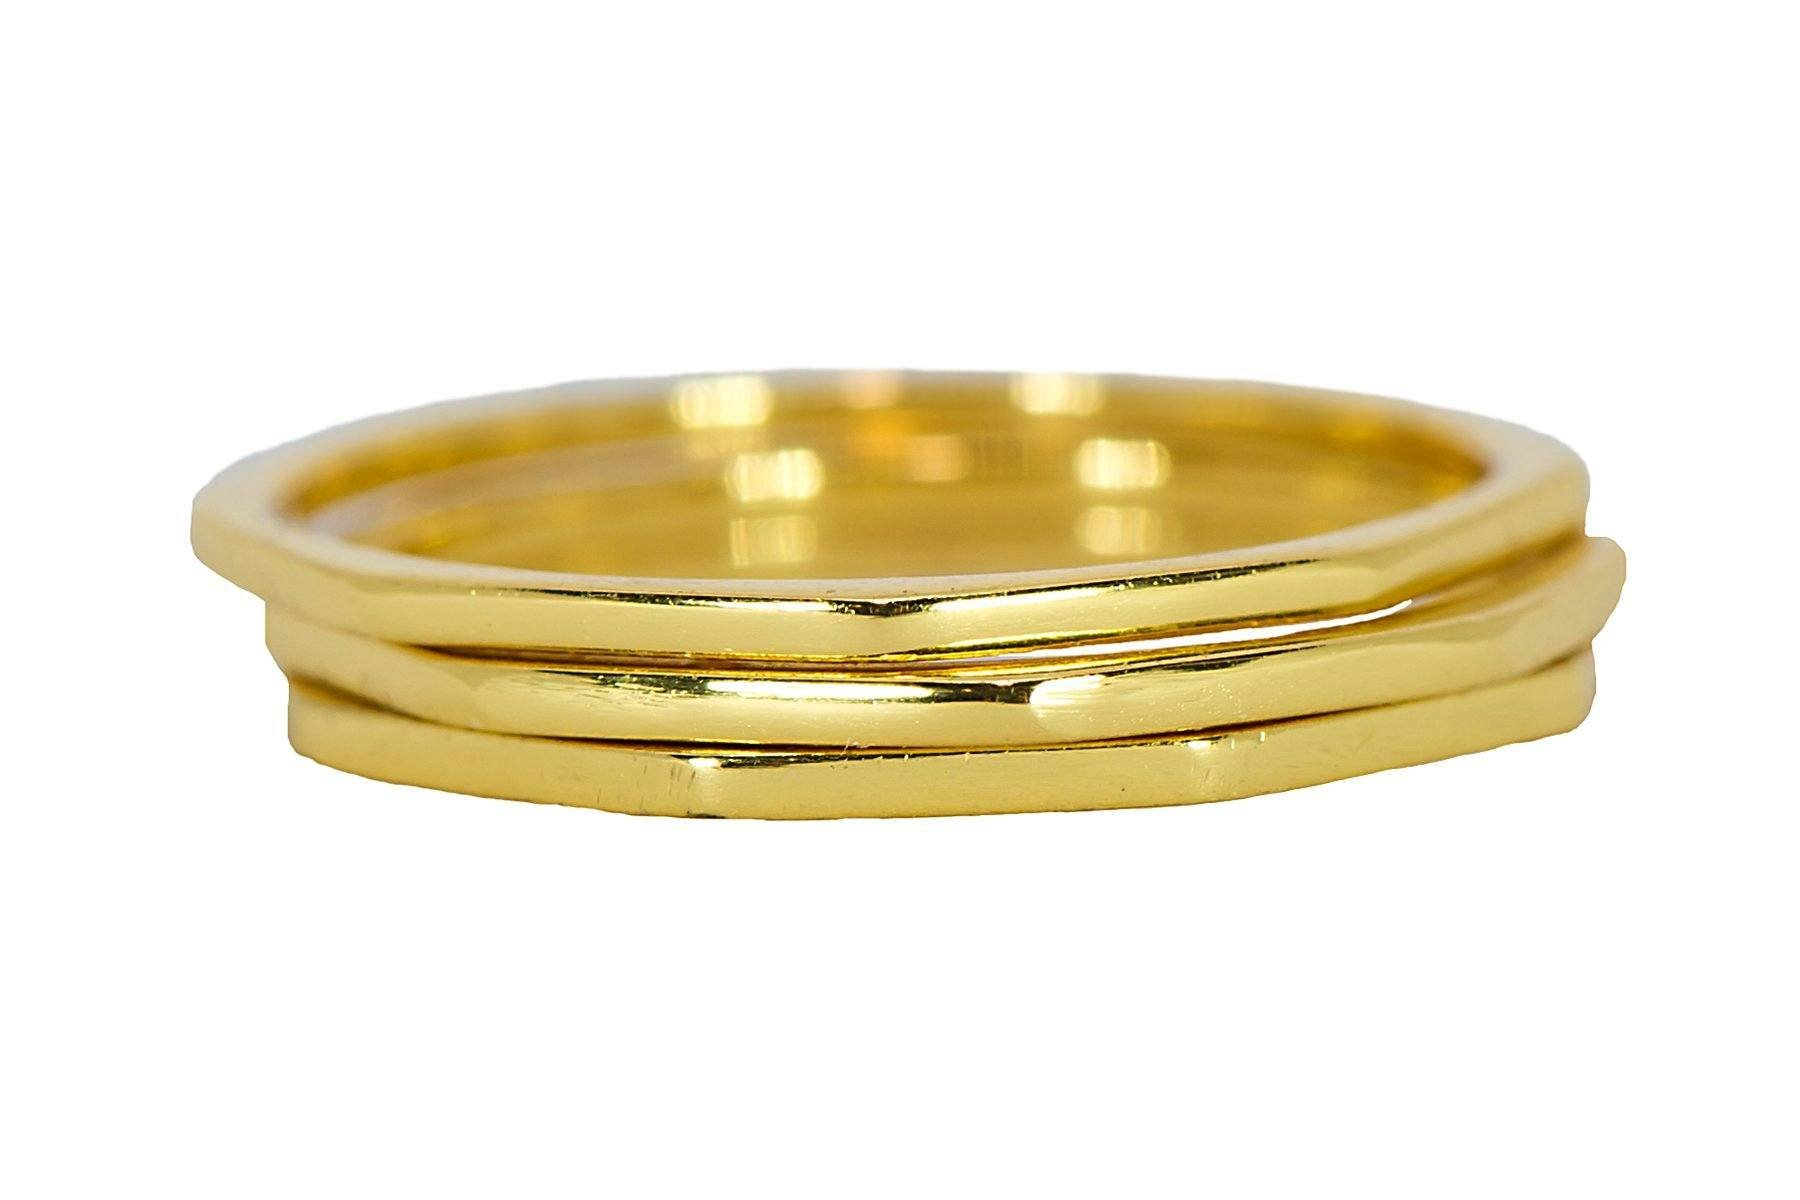 Pura Vida Gold Plated Delicate Stacked Rings - Brass Base .925 Sterling Silver - Size 9